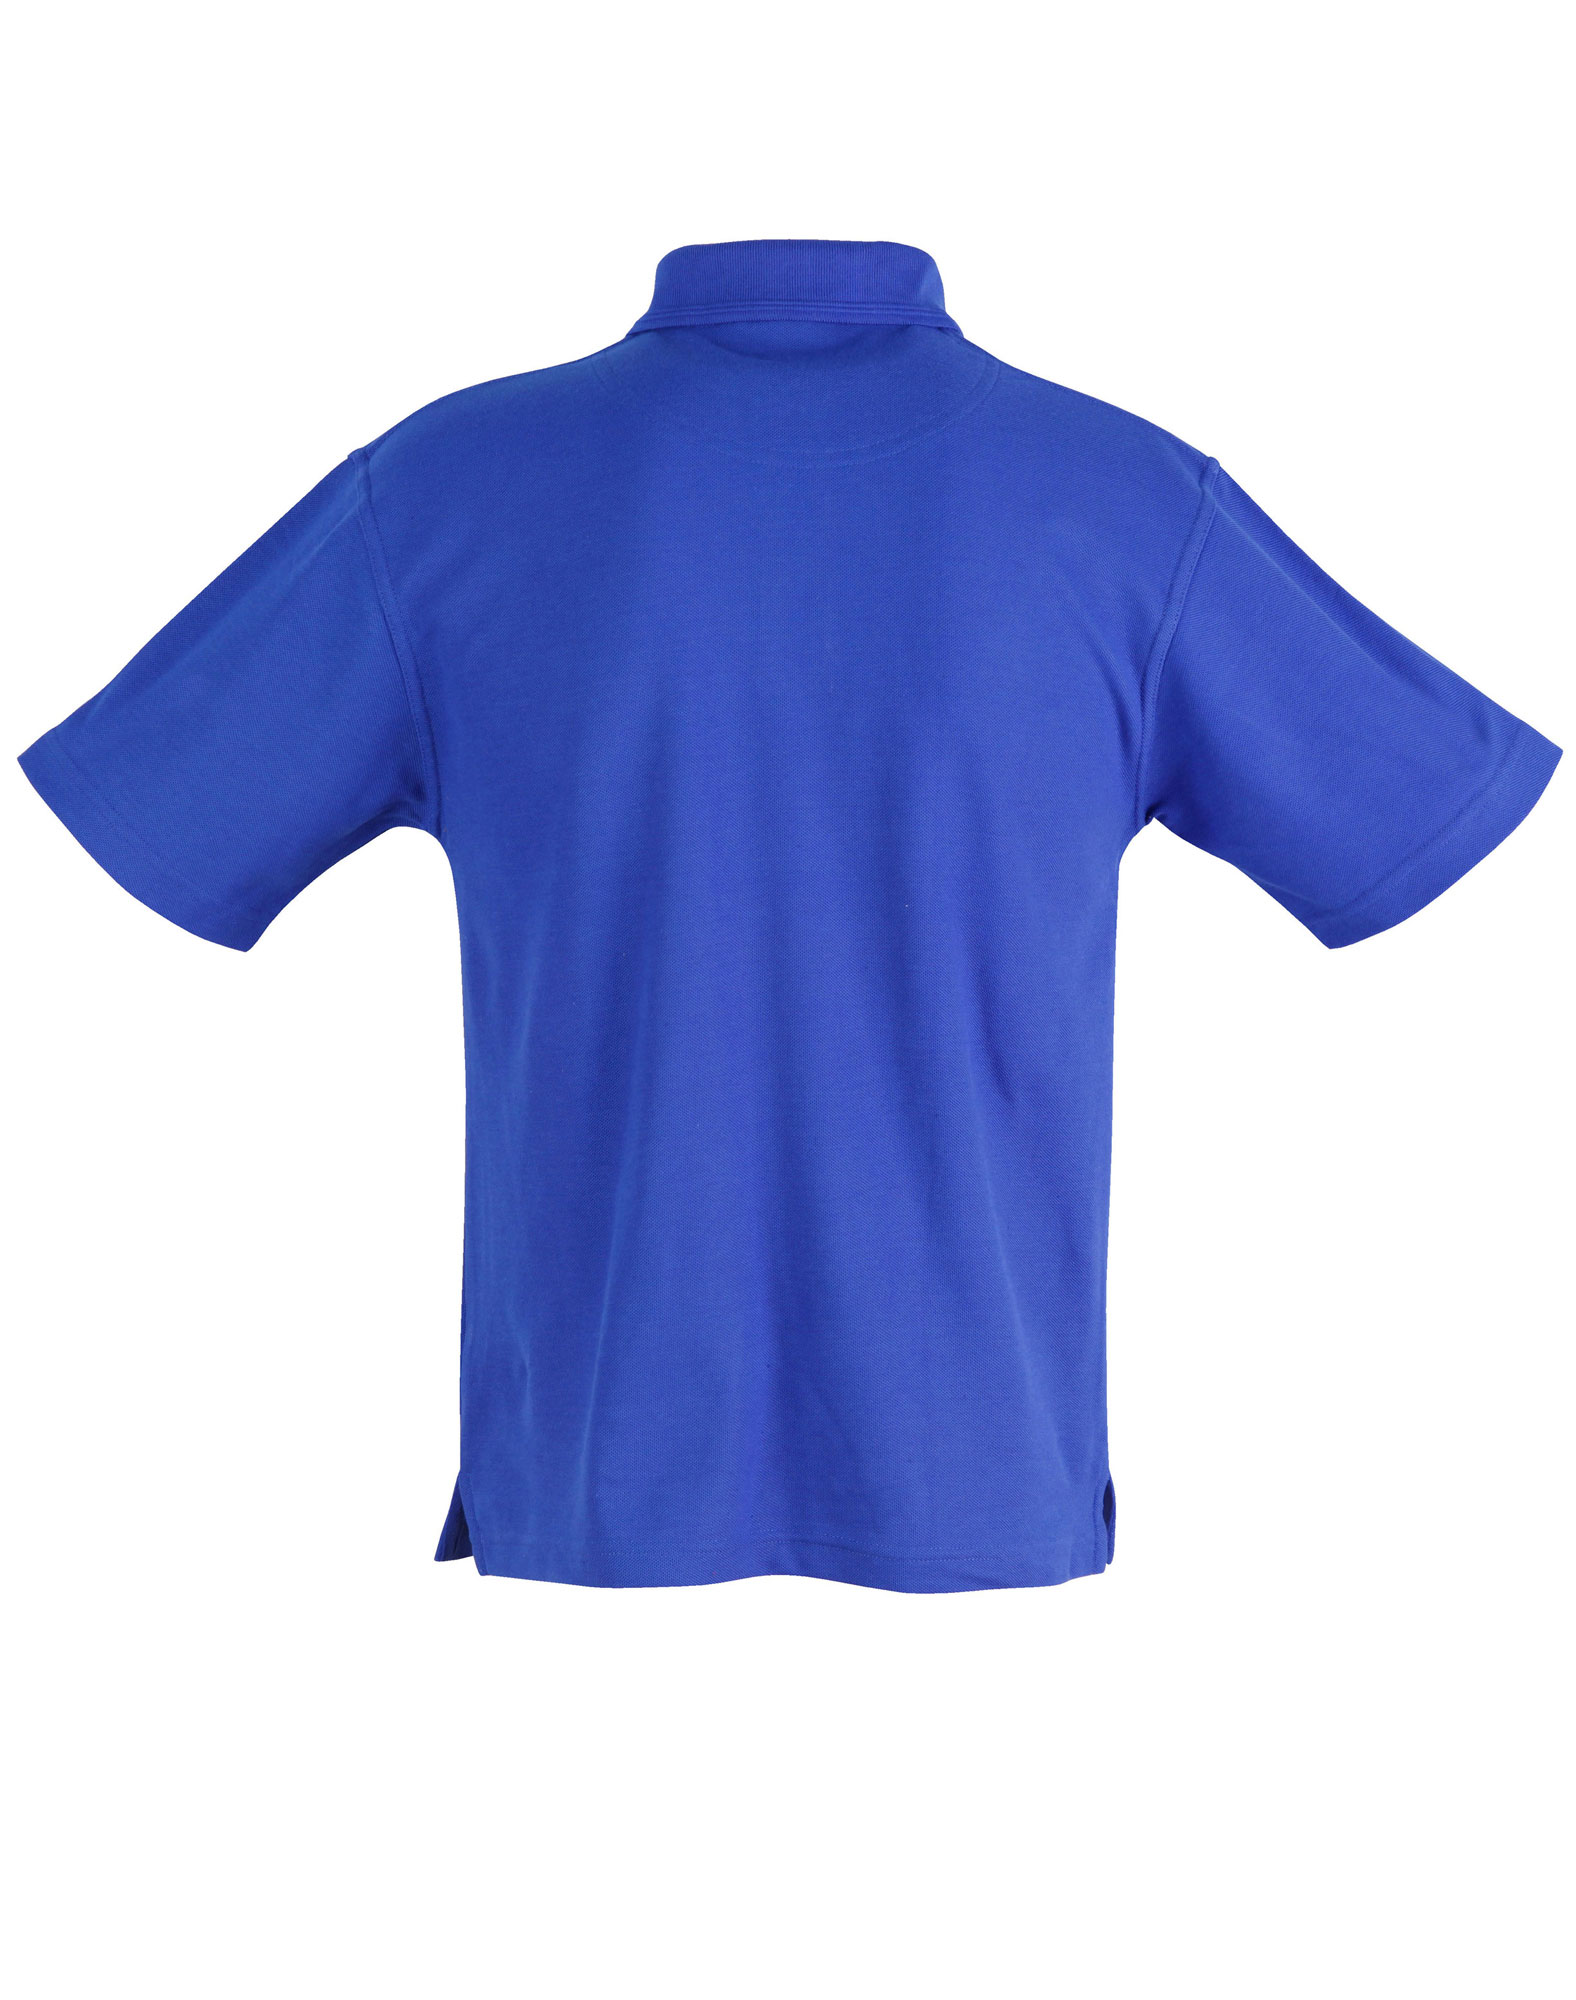 https://s3-ap-southeast-1.amazonaws.com/ws-imgs/POLOSHIRTS/PS11_Royal_Back_big.jpg